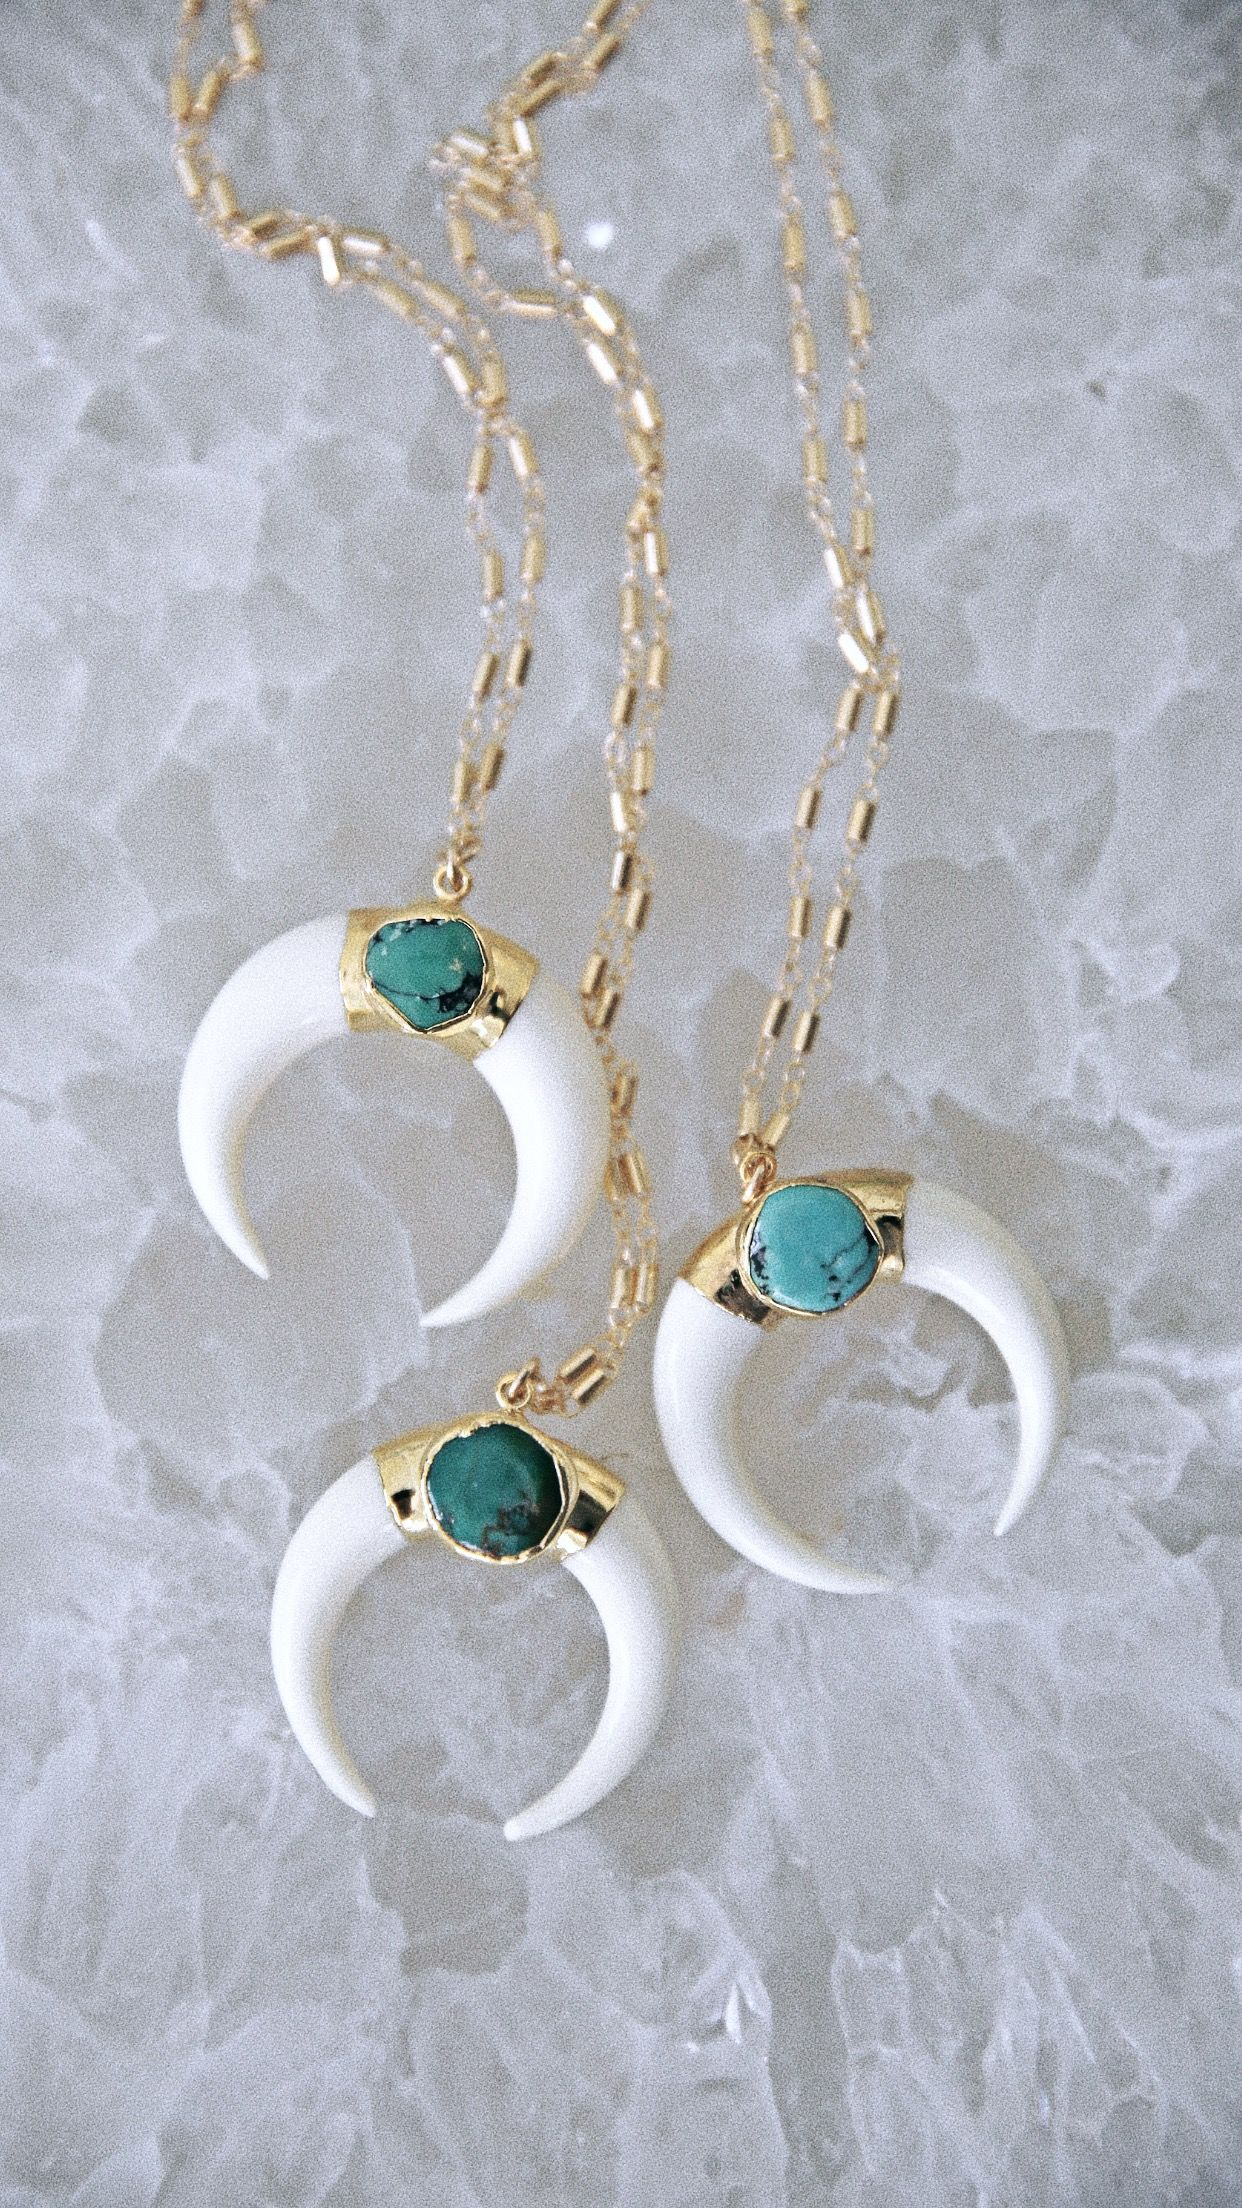 222a55578415 Luna necklace - white + turquoise